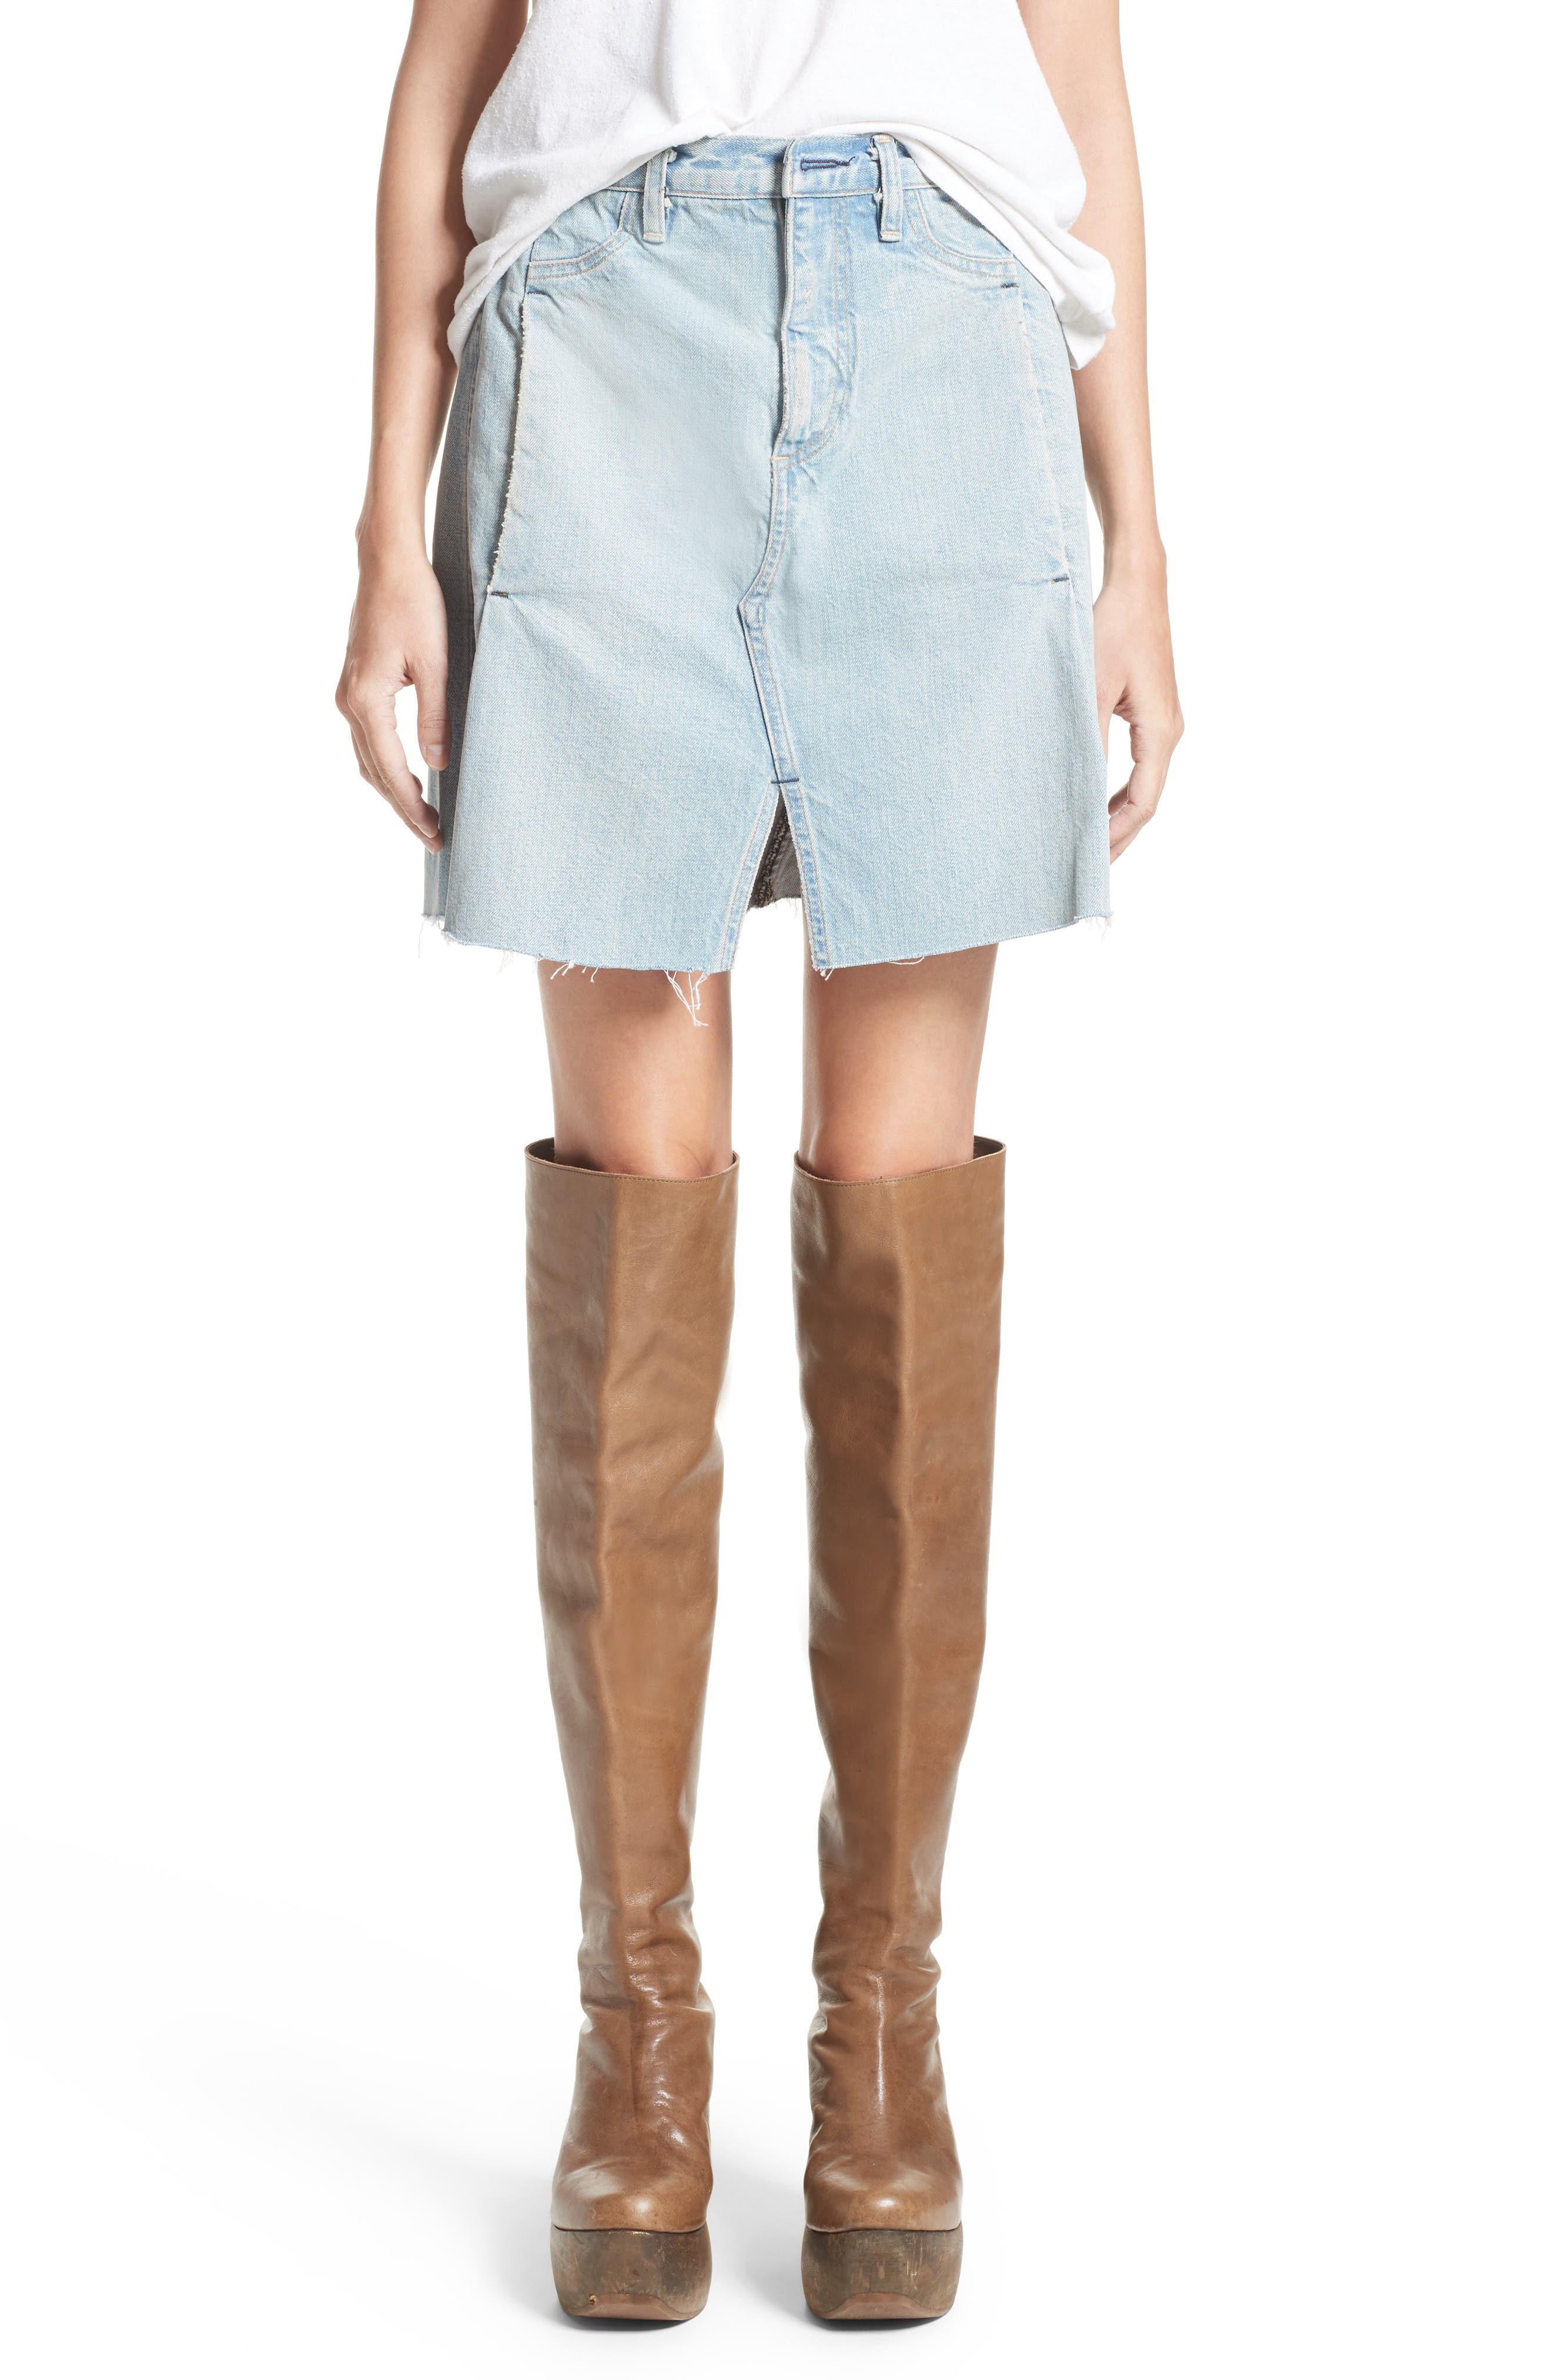 Simon Miller Denim Skirt (Nordstrom Exclusive)